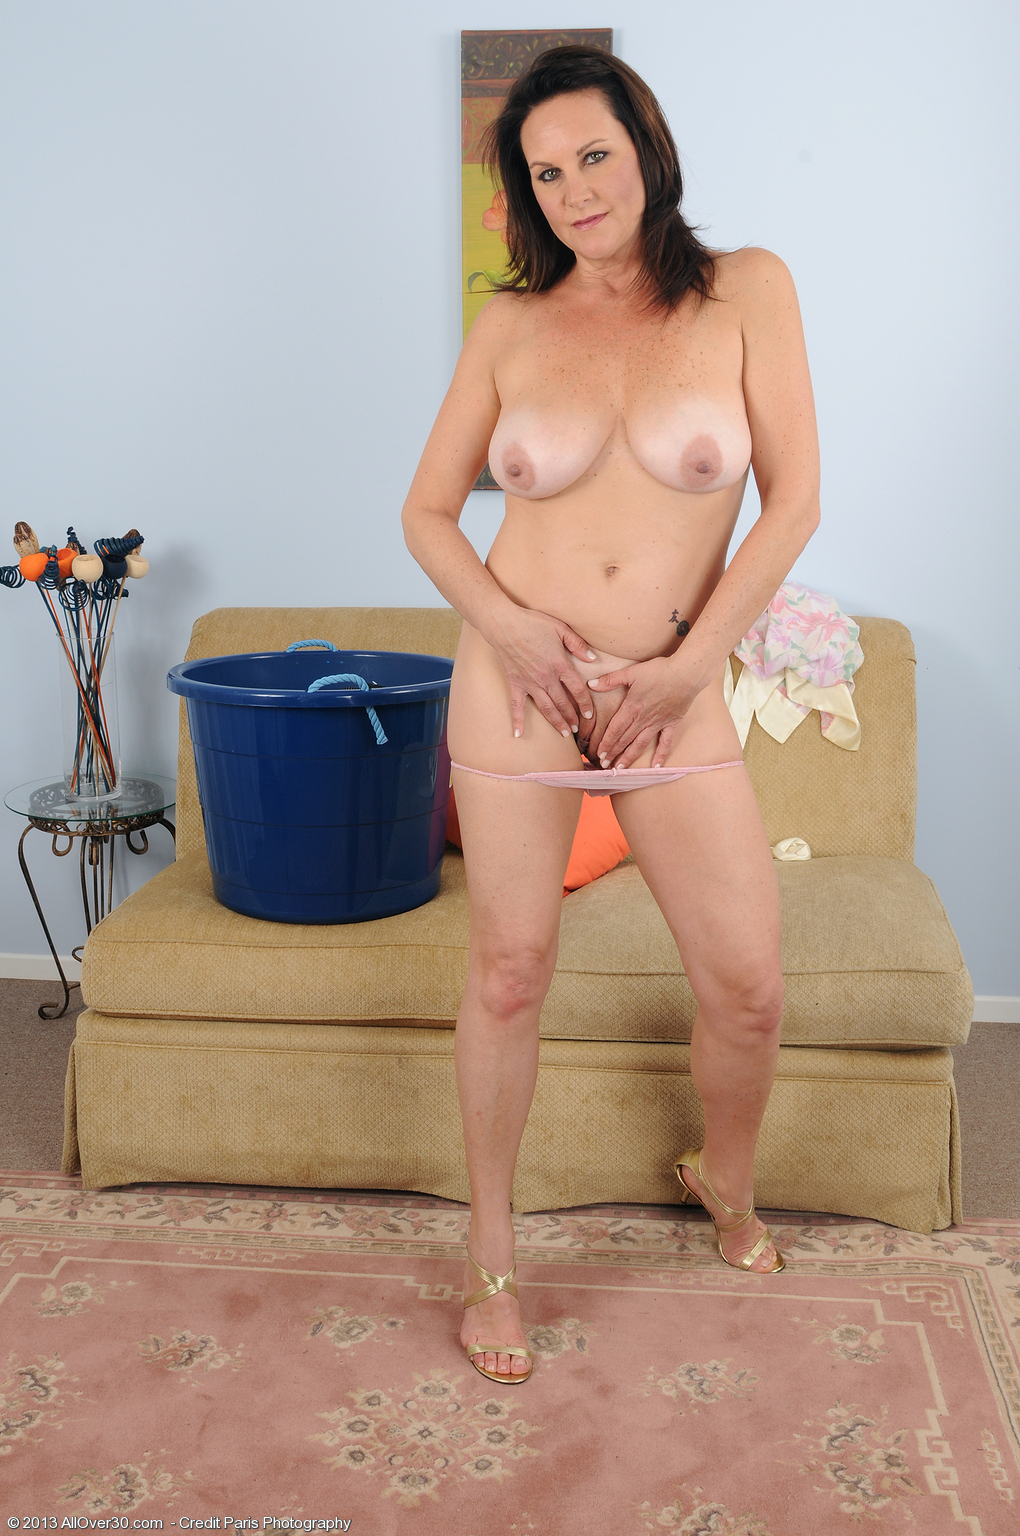 46 year old milf masturbates in soaked panties - 1 9